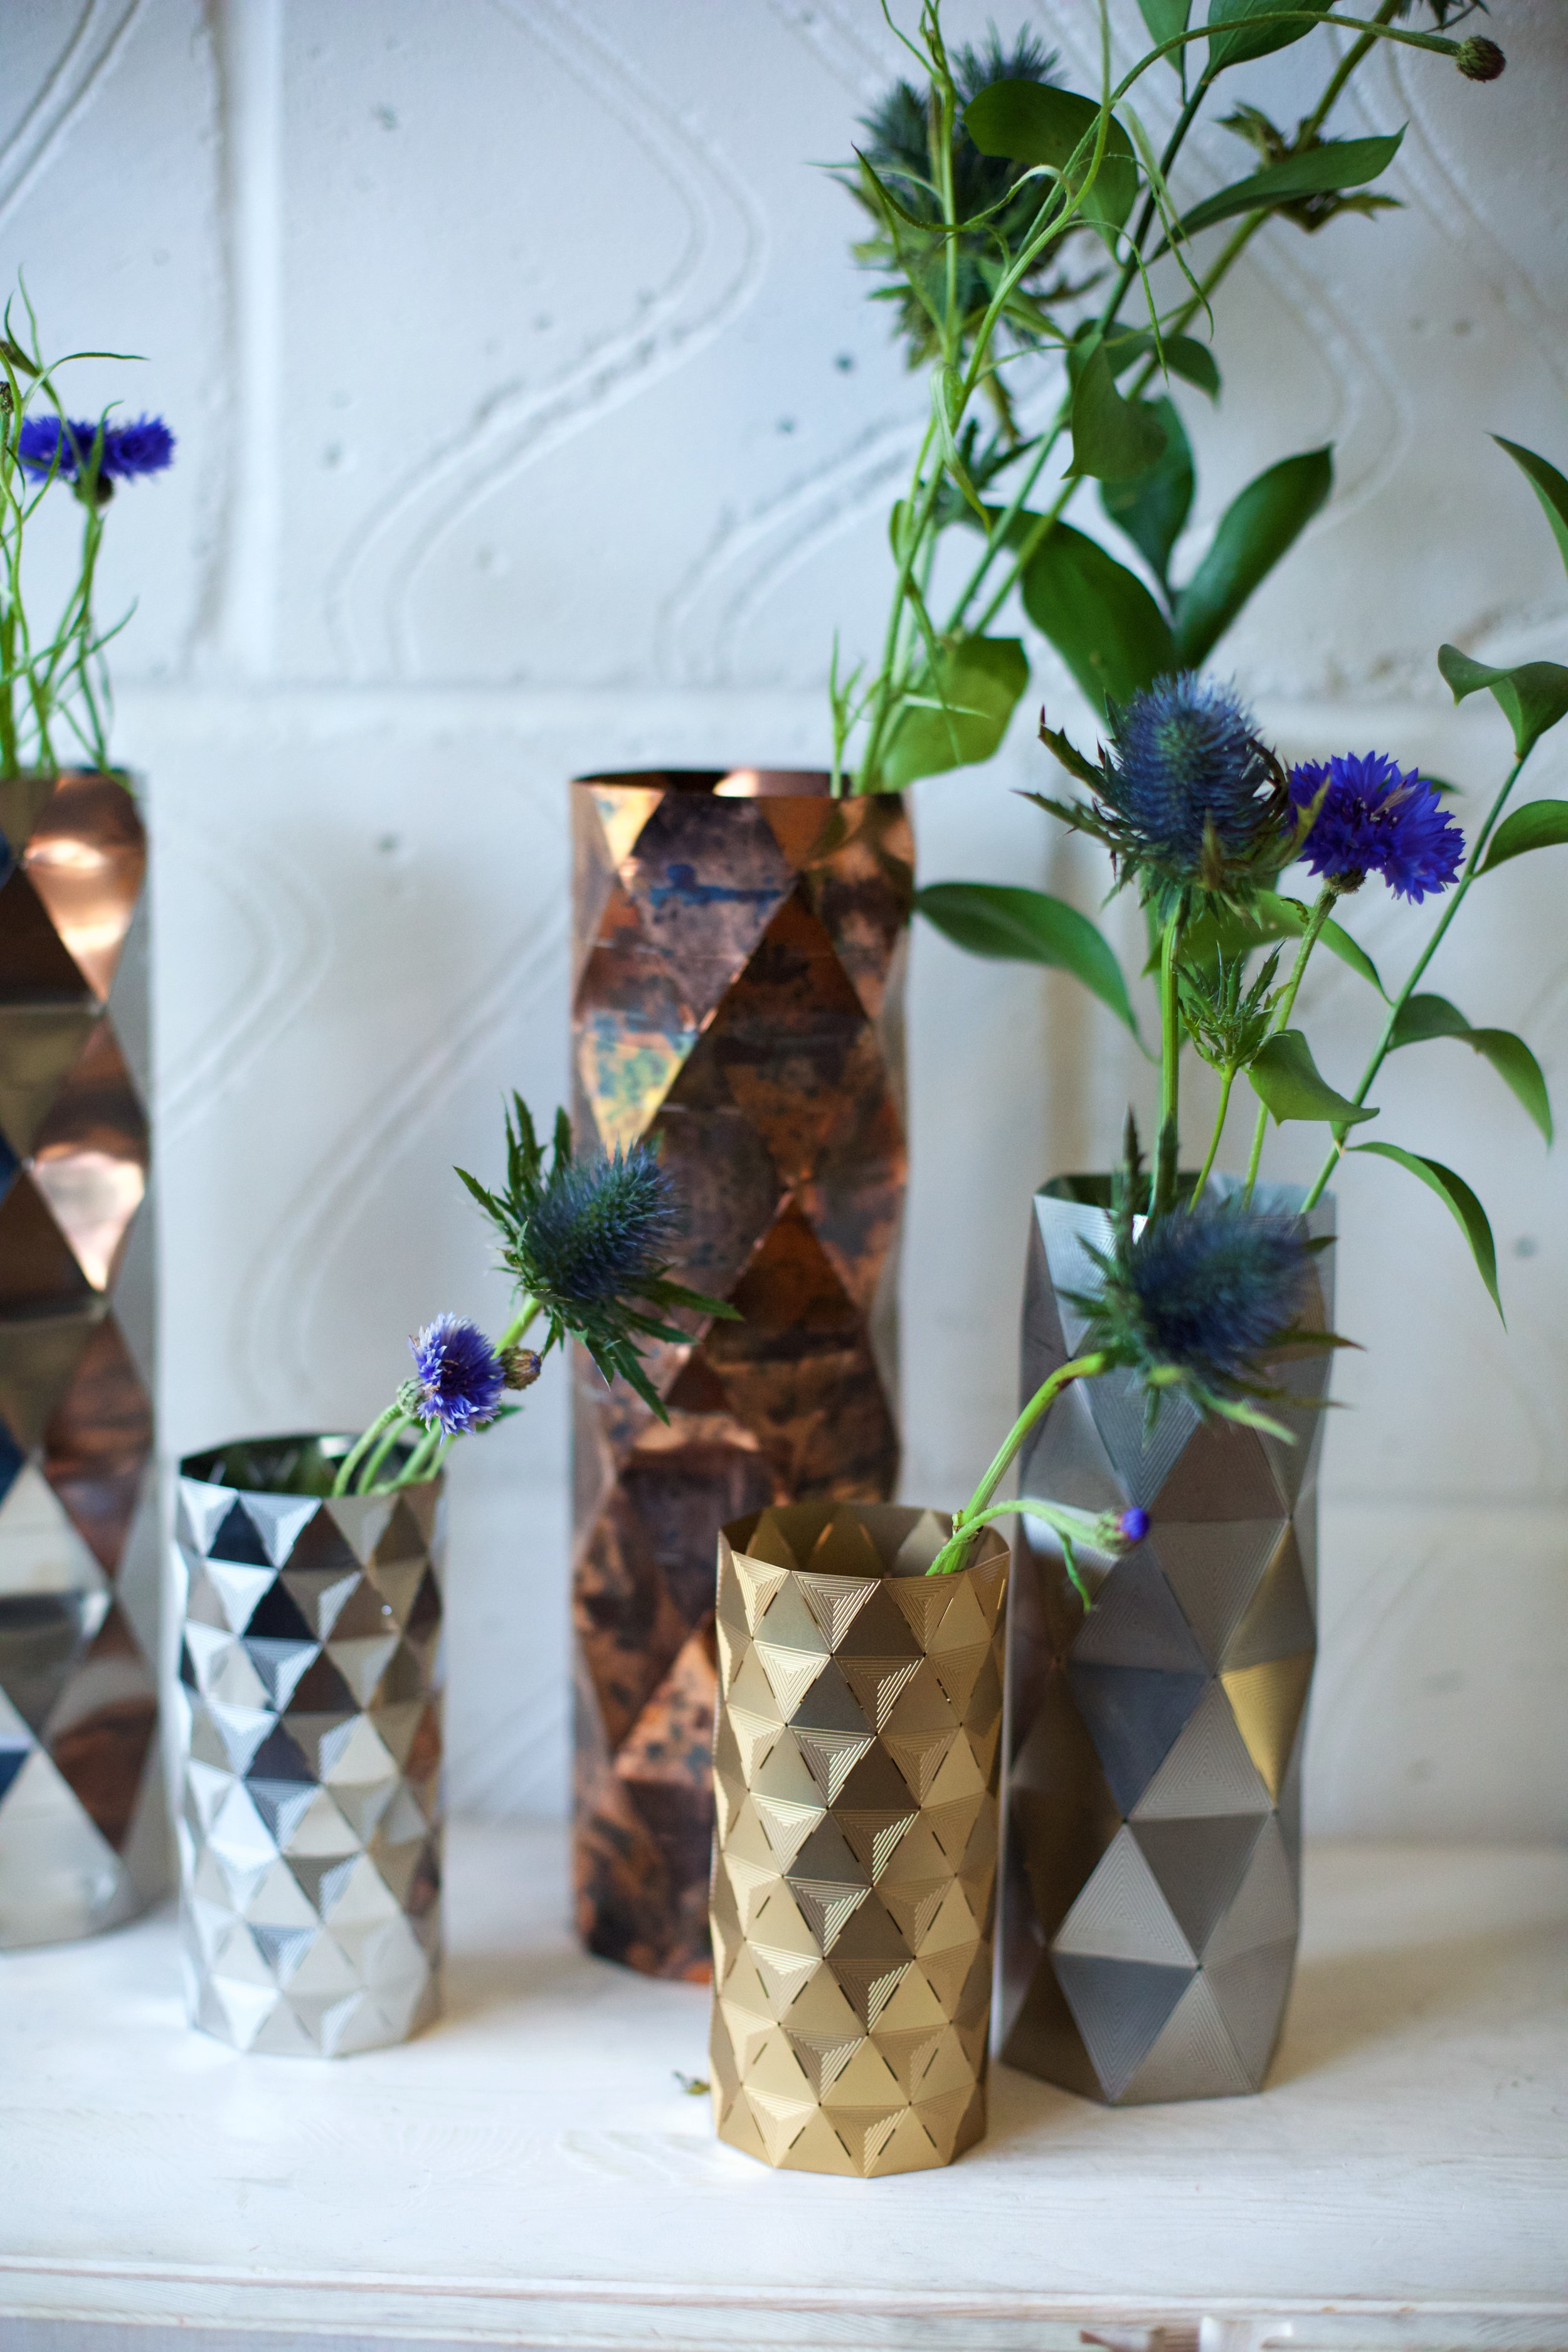 Deptford - Vases by Another Studio, Cockpit Arts Open Studios, photo by Jamie Trounce.jpg